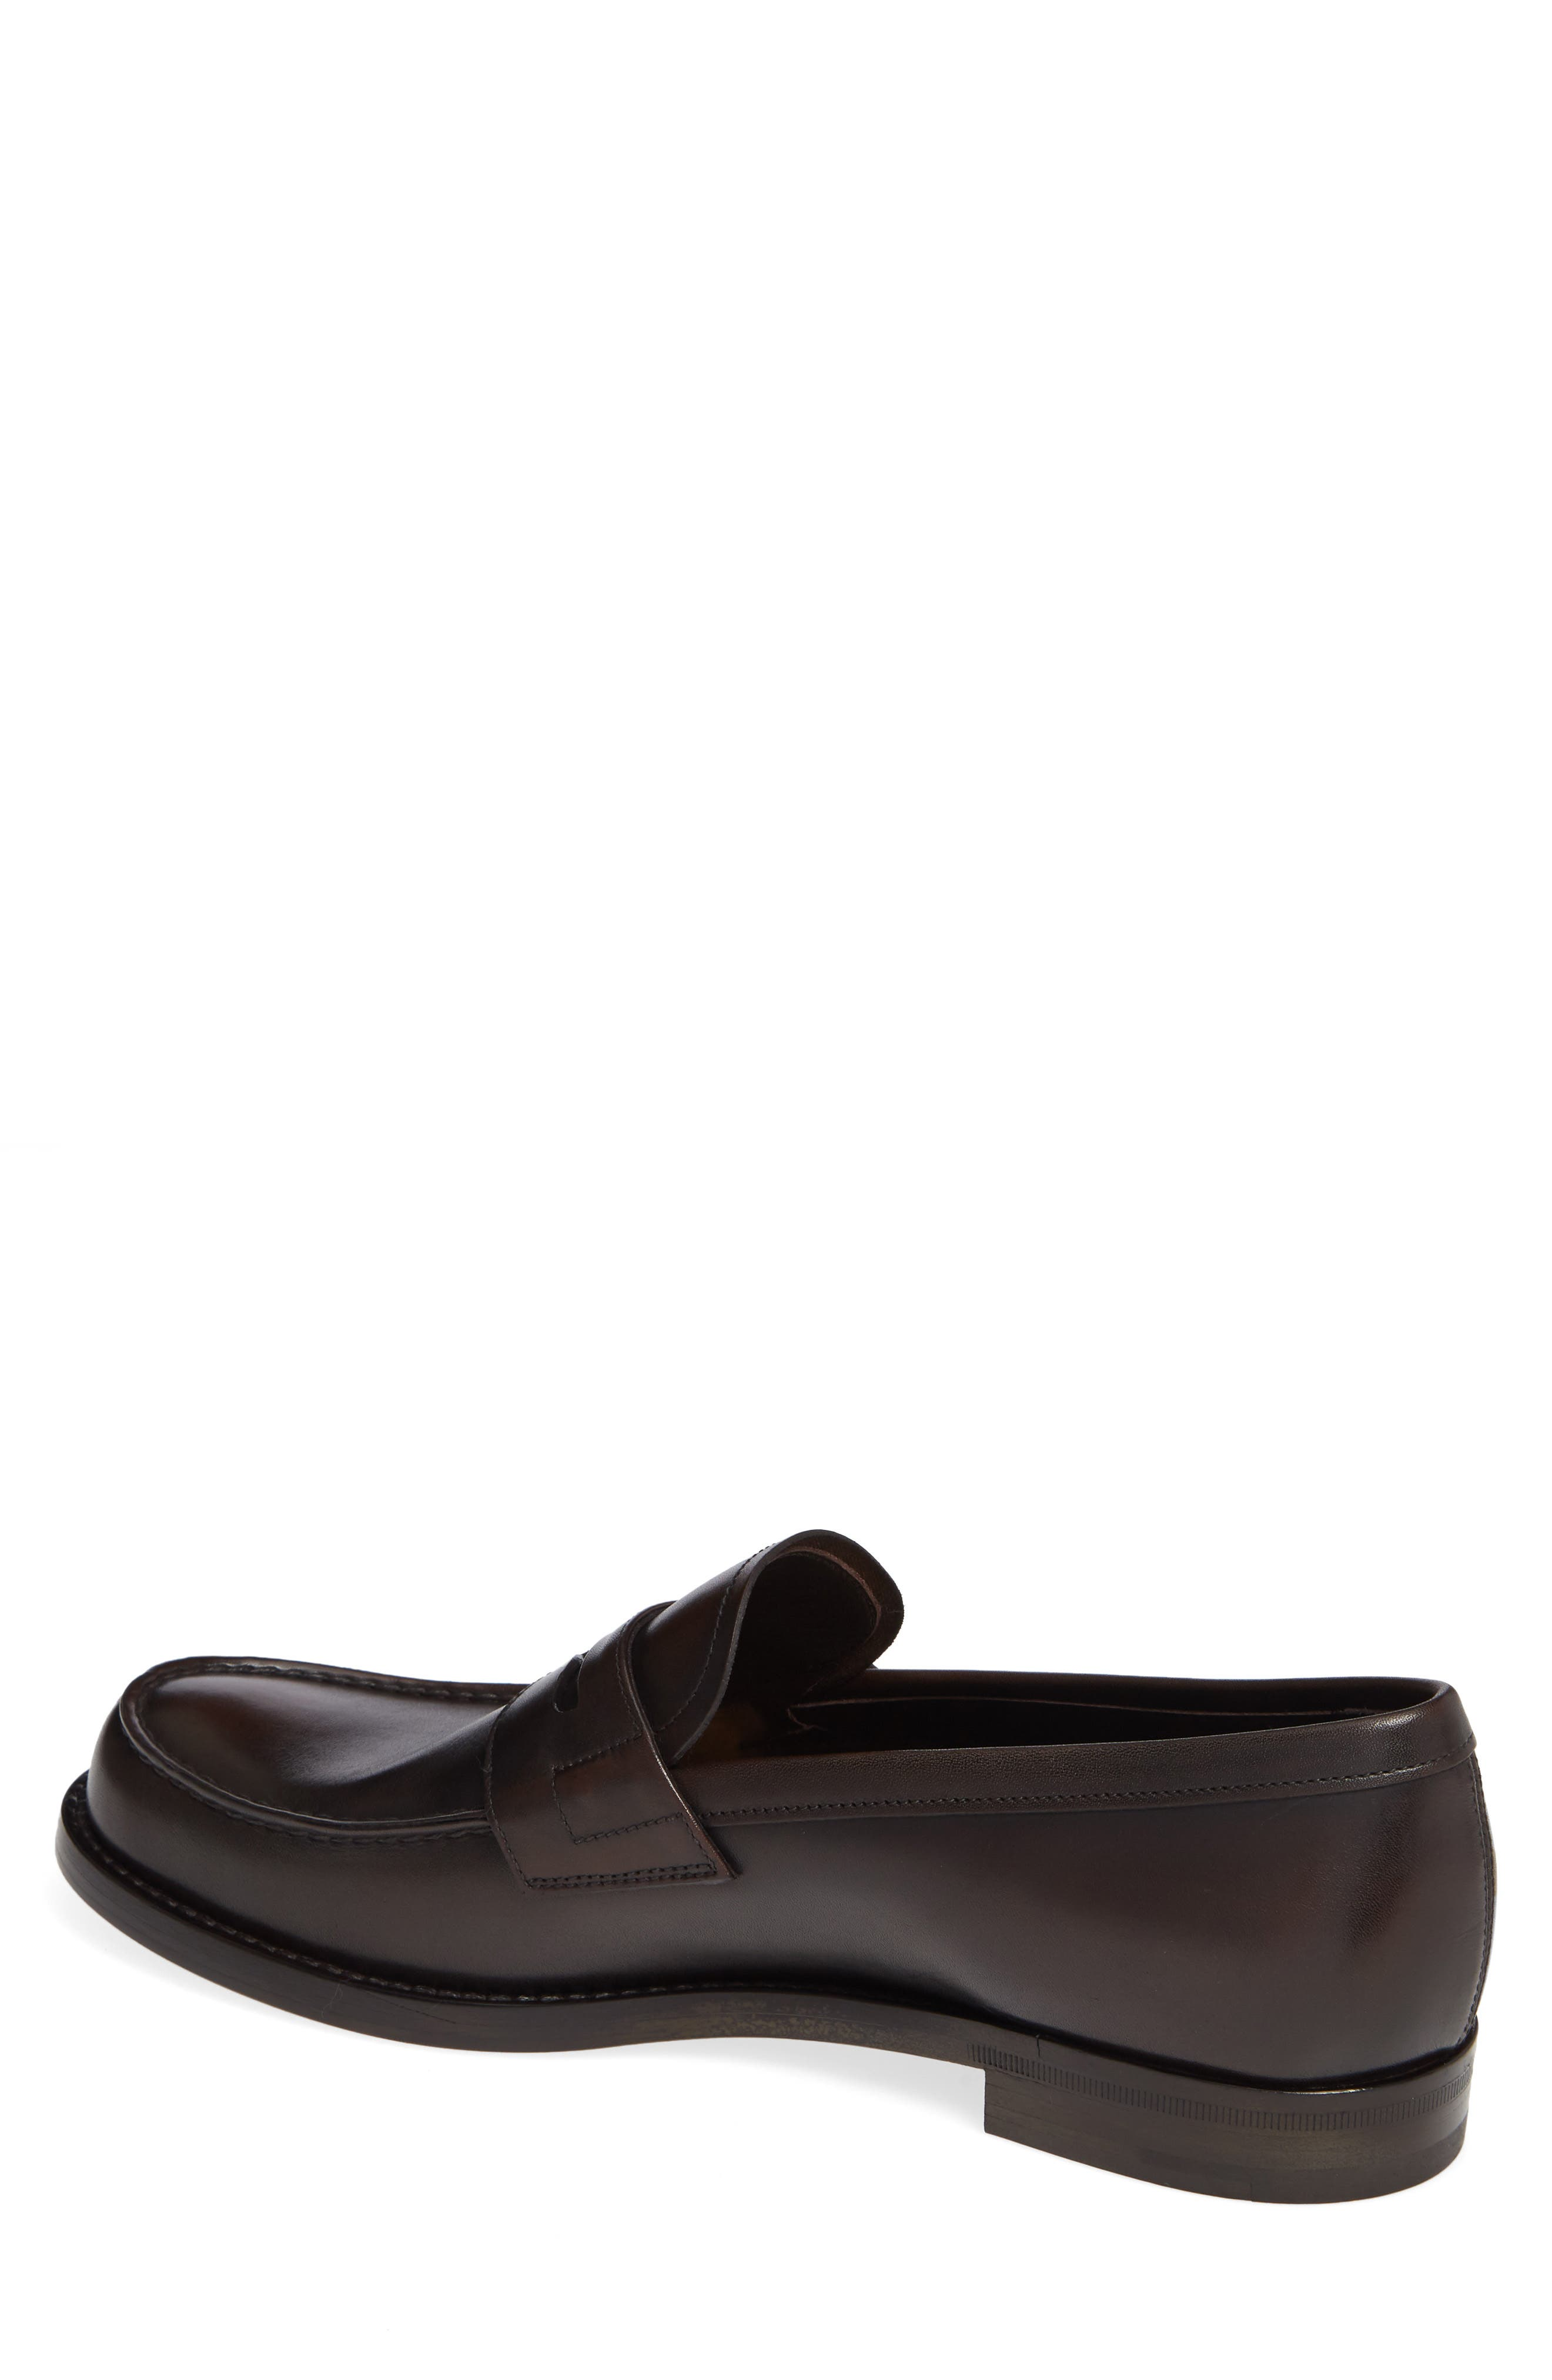 Penny Loafer,                             Alternate thumbnail 2, color,                             MORO BROWN